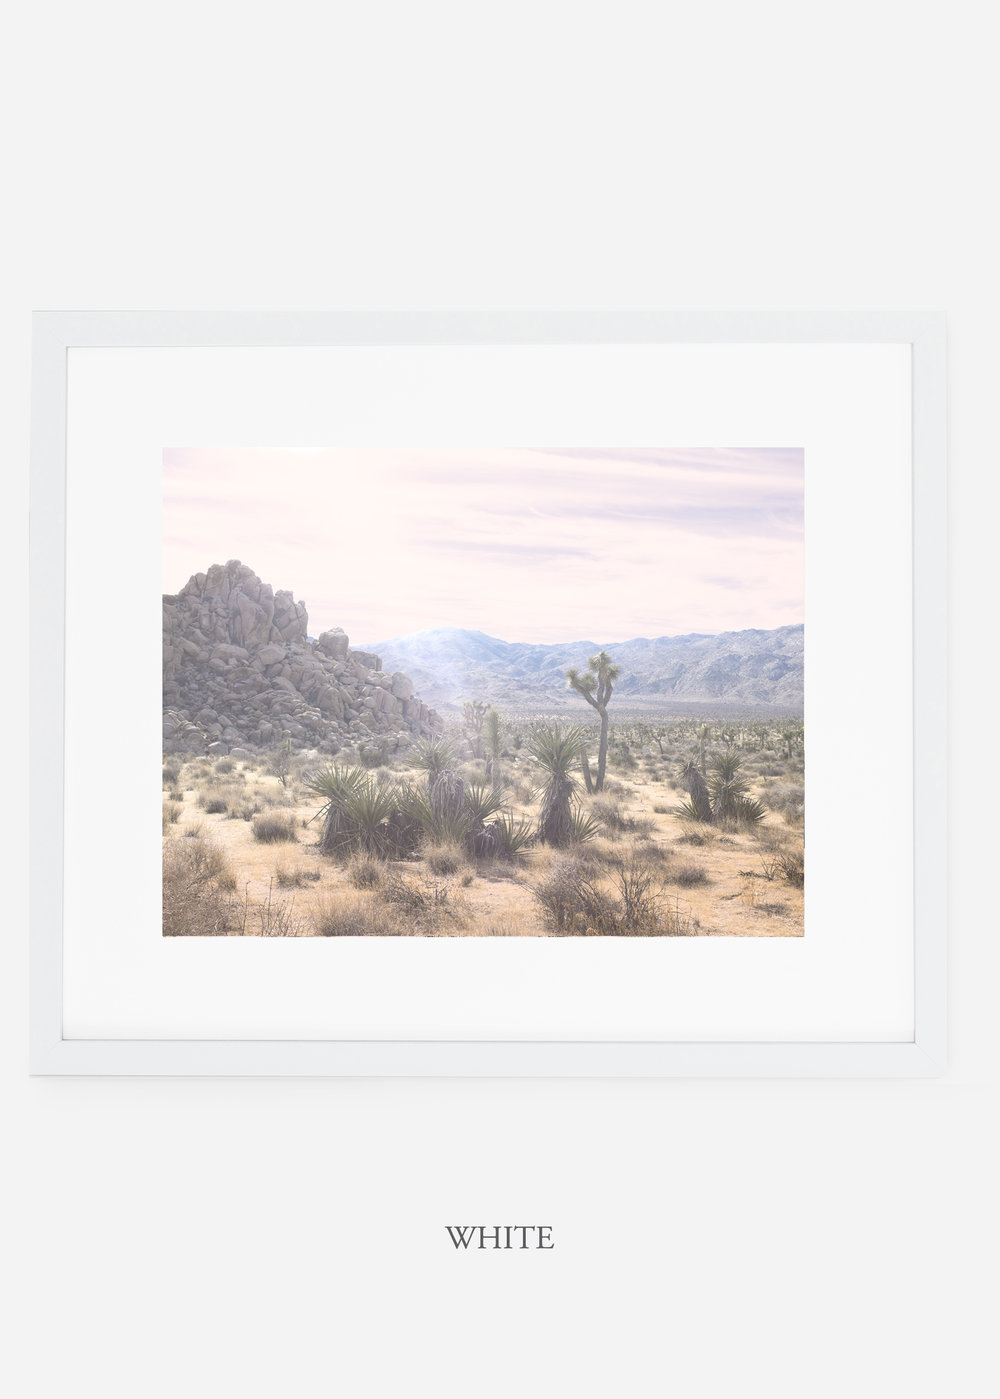 WilderCalifornia_whiteframe_JoshuaTree_No.9_interiordesign_prints_art.jpg